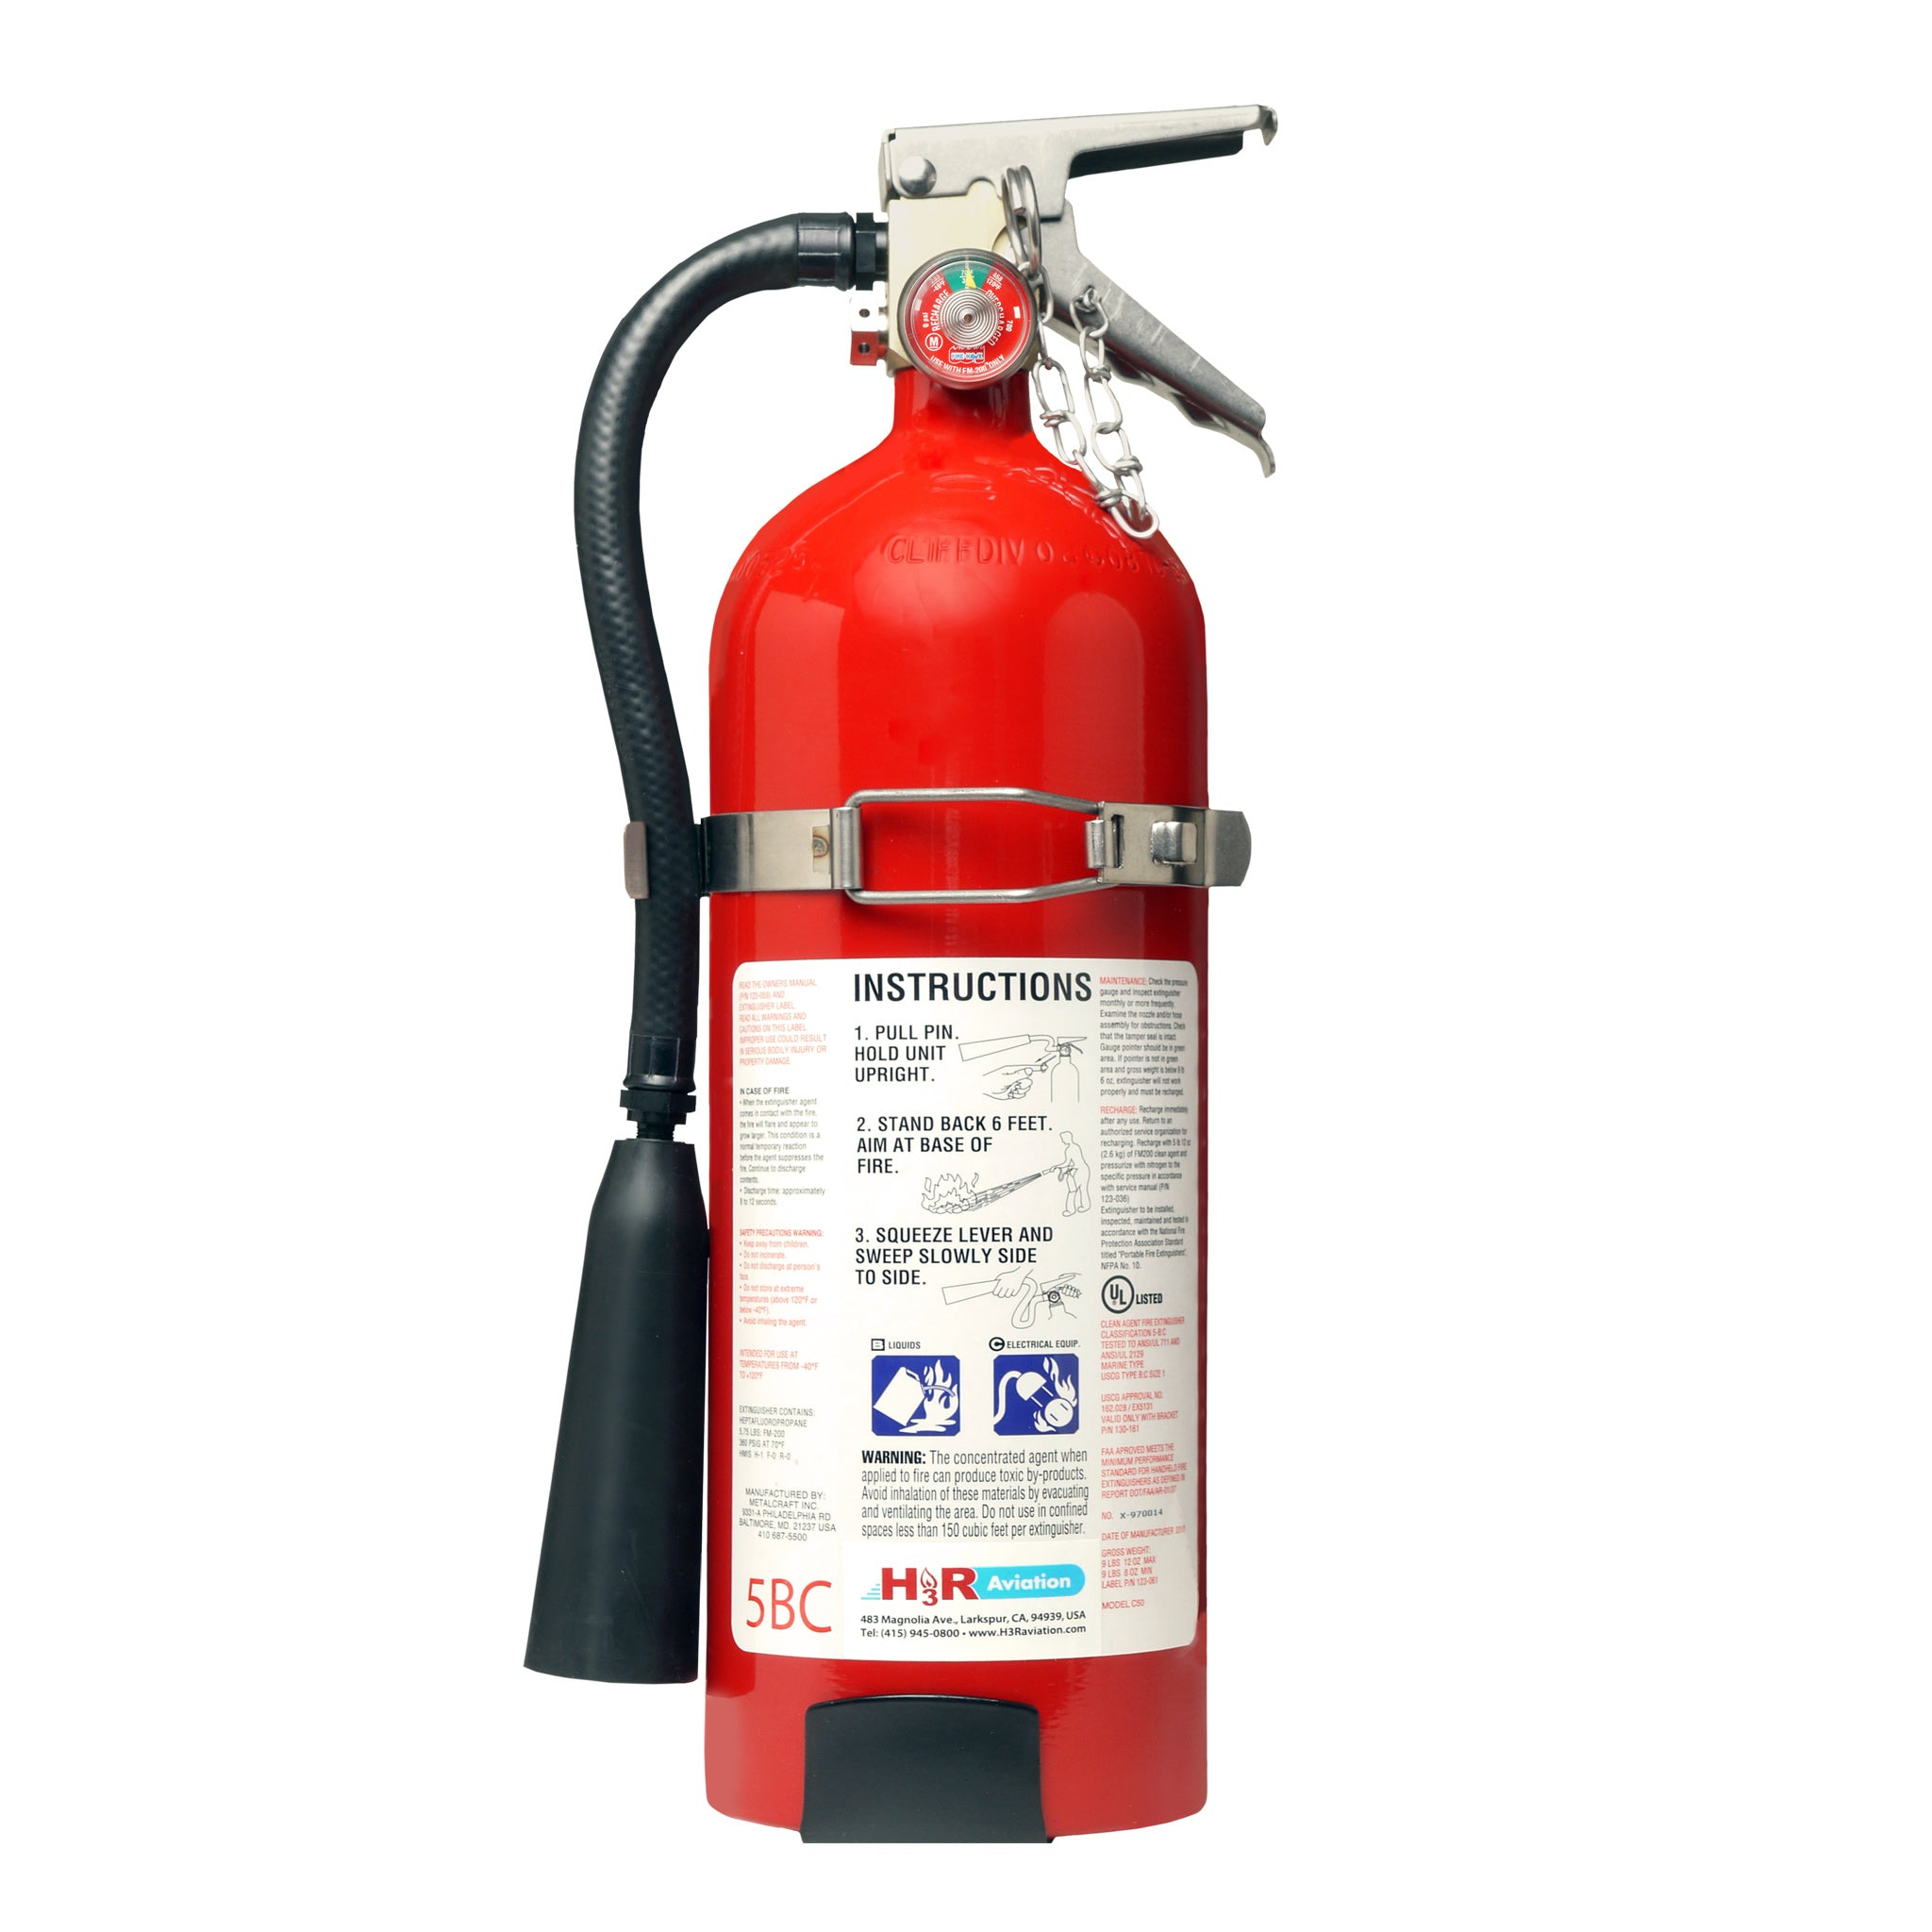 MODEL FM10T - 10.75 lb. FM-200 Fire Extinguisher